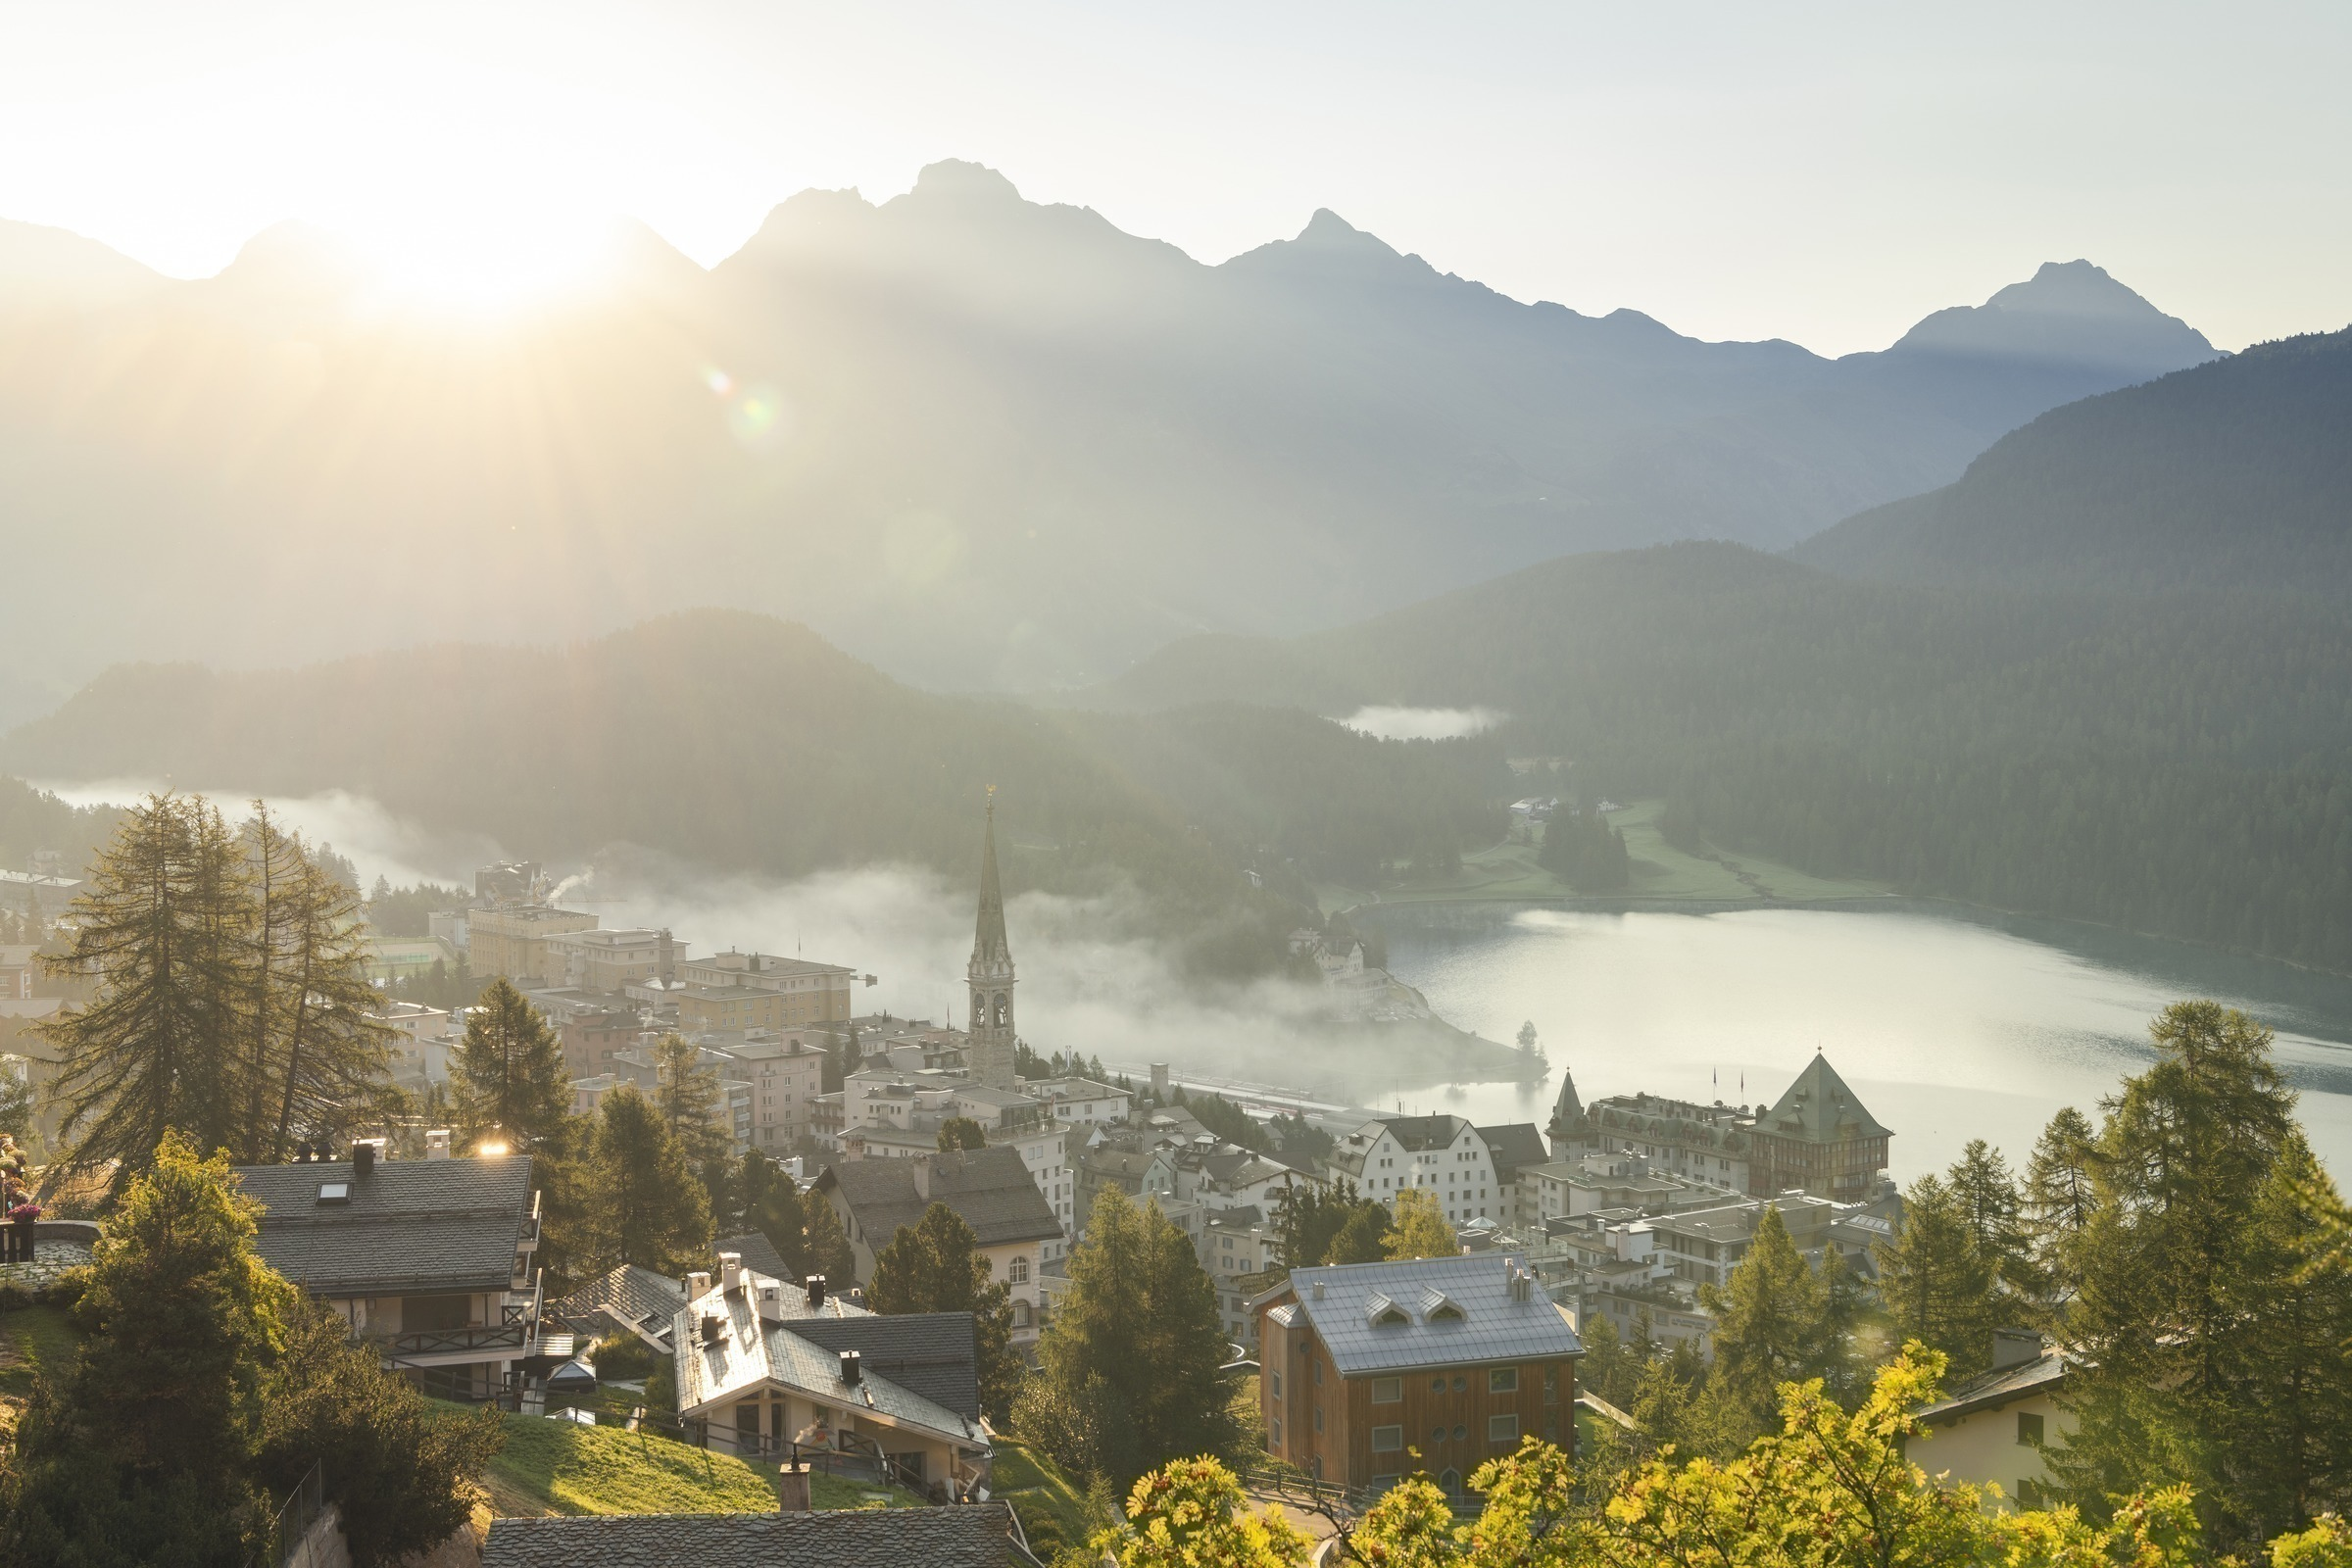 Guided City Tour of St Moritz